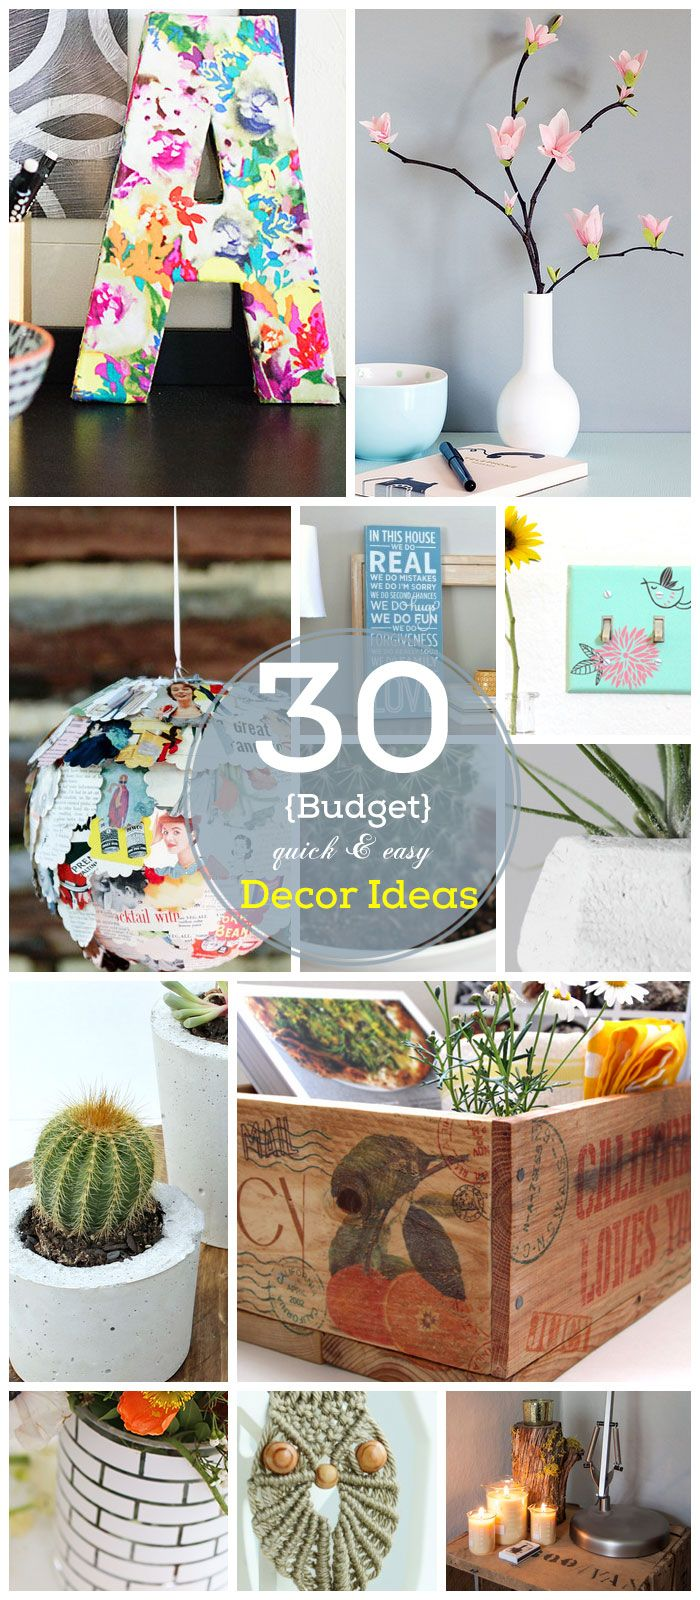 Best Decor Hacks 30 Diy Home Decor Ideas On A Budget